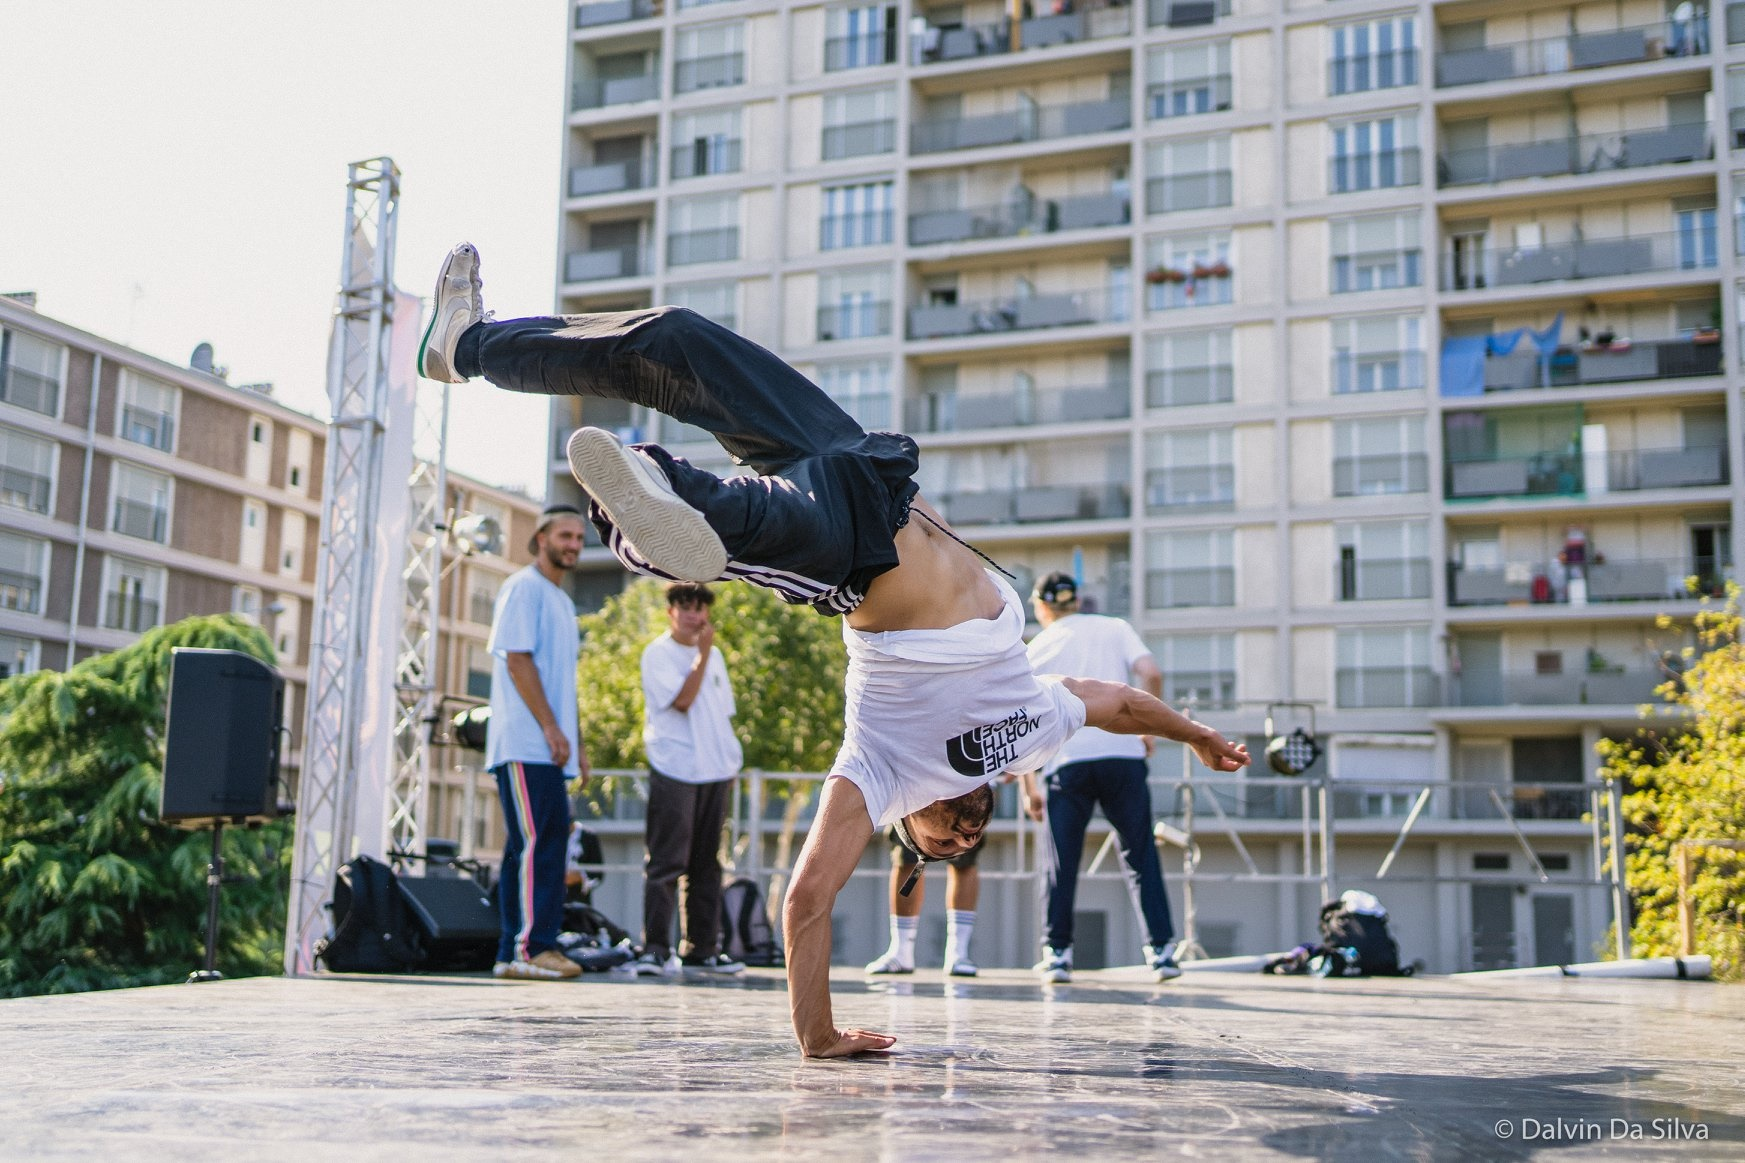 Hip hop / Tricking